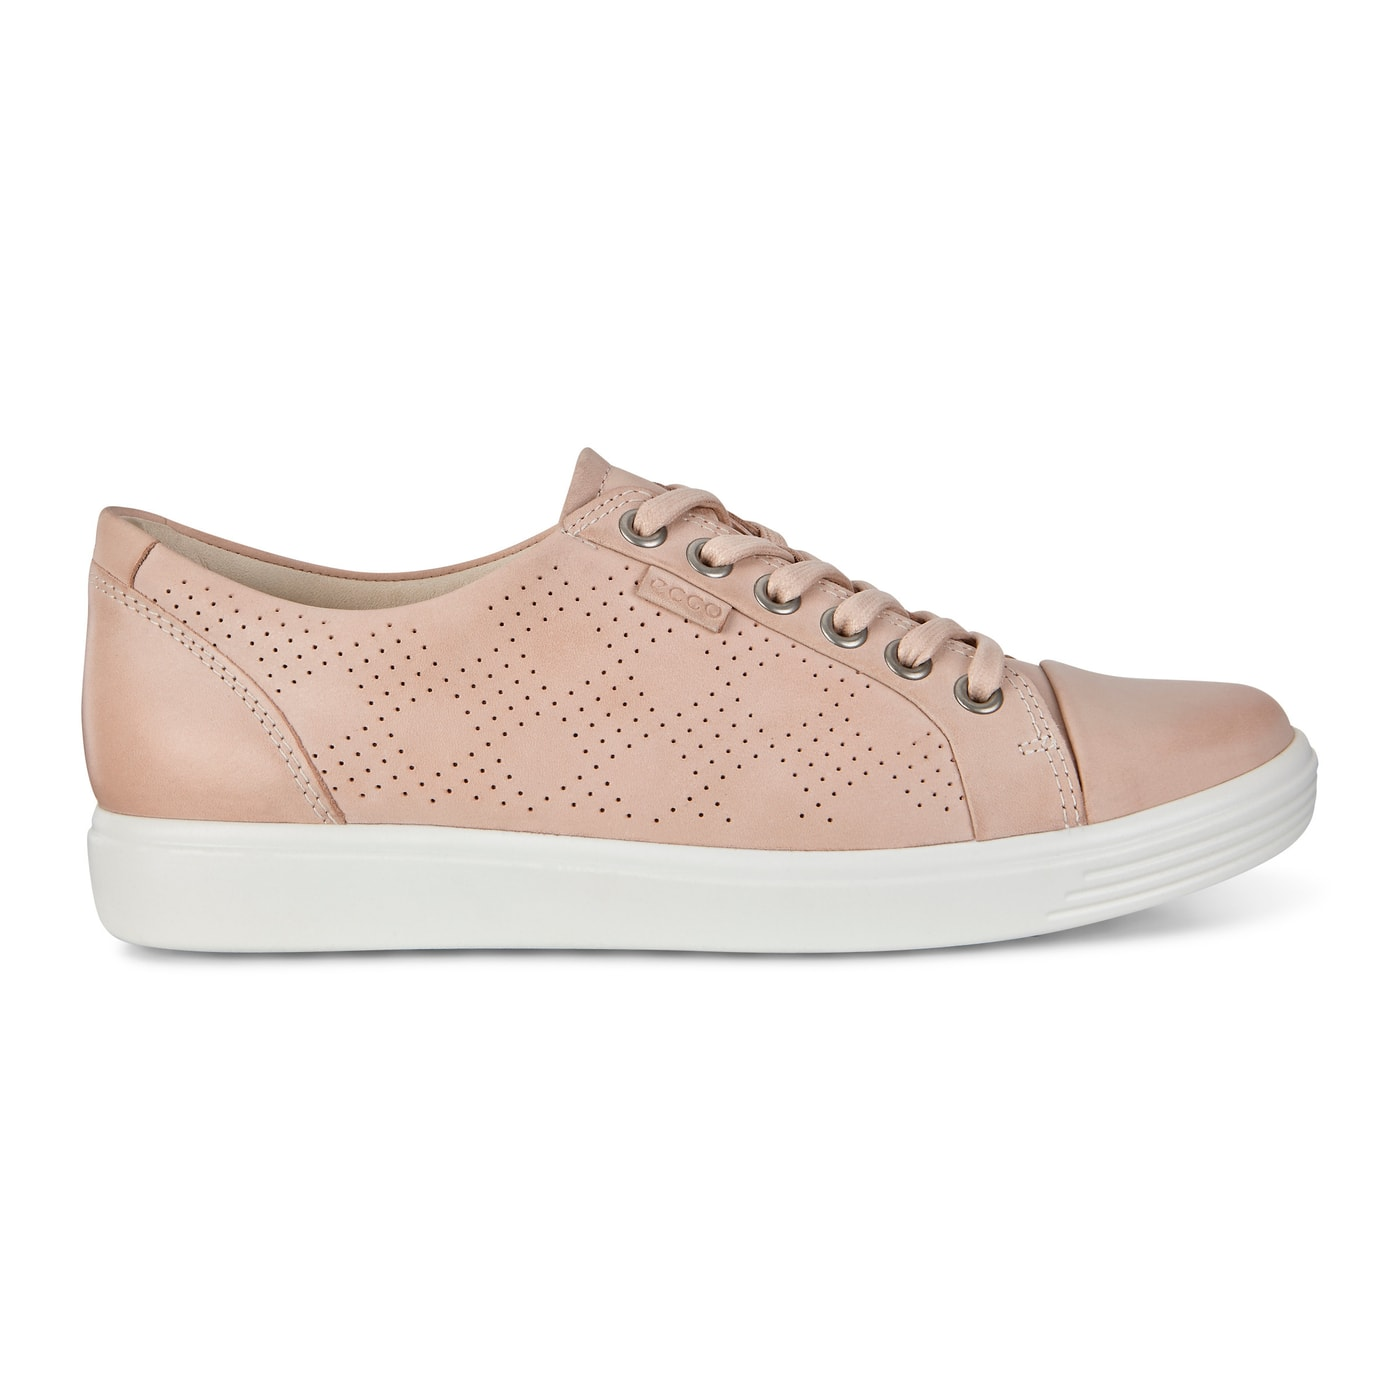 Ecco Women's Soft 7 Perf Tie Leather Sneaker $55 & More + Free Shipping